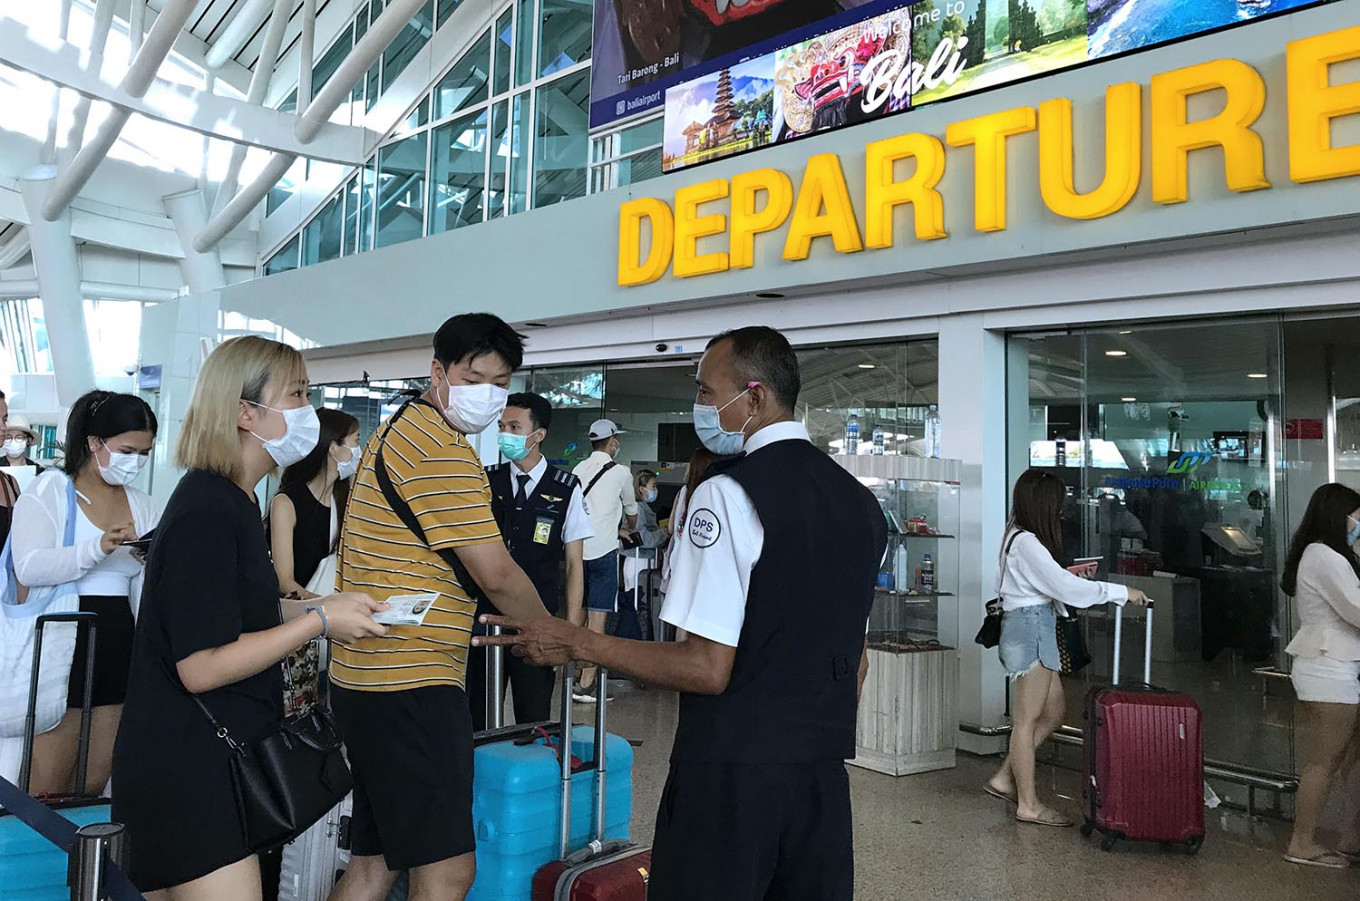 Jokowi wants contingency plan as coronavirus takes toll on Indonesia's tourism